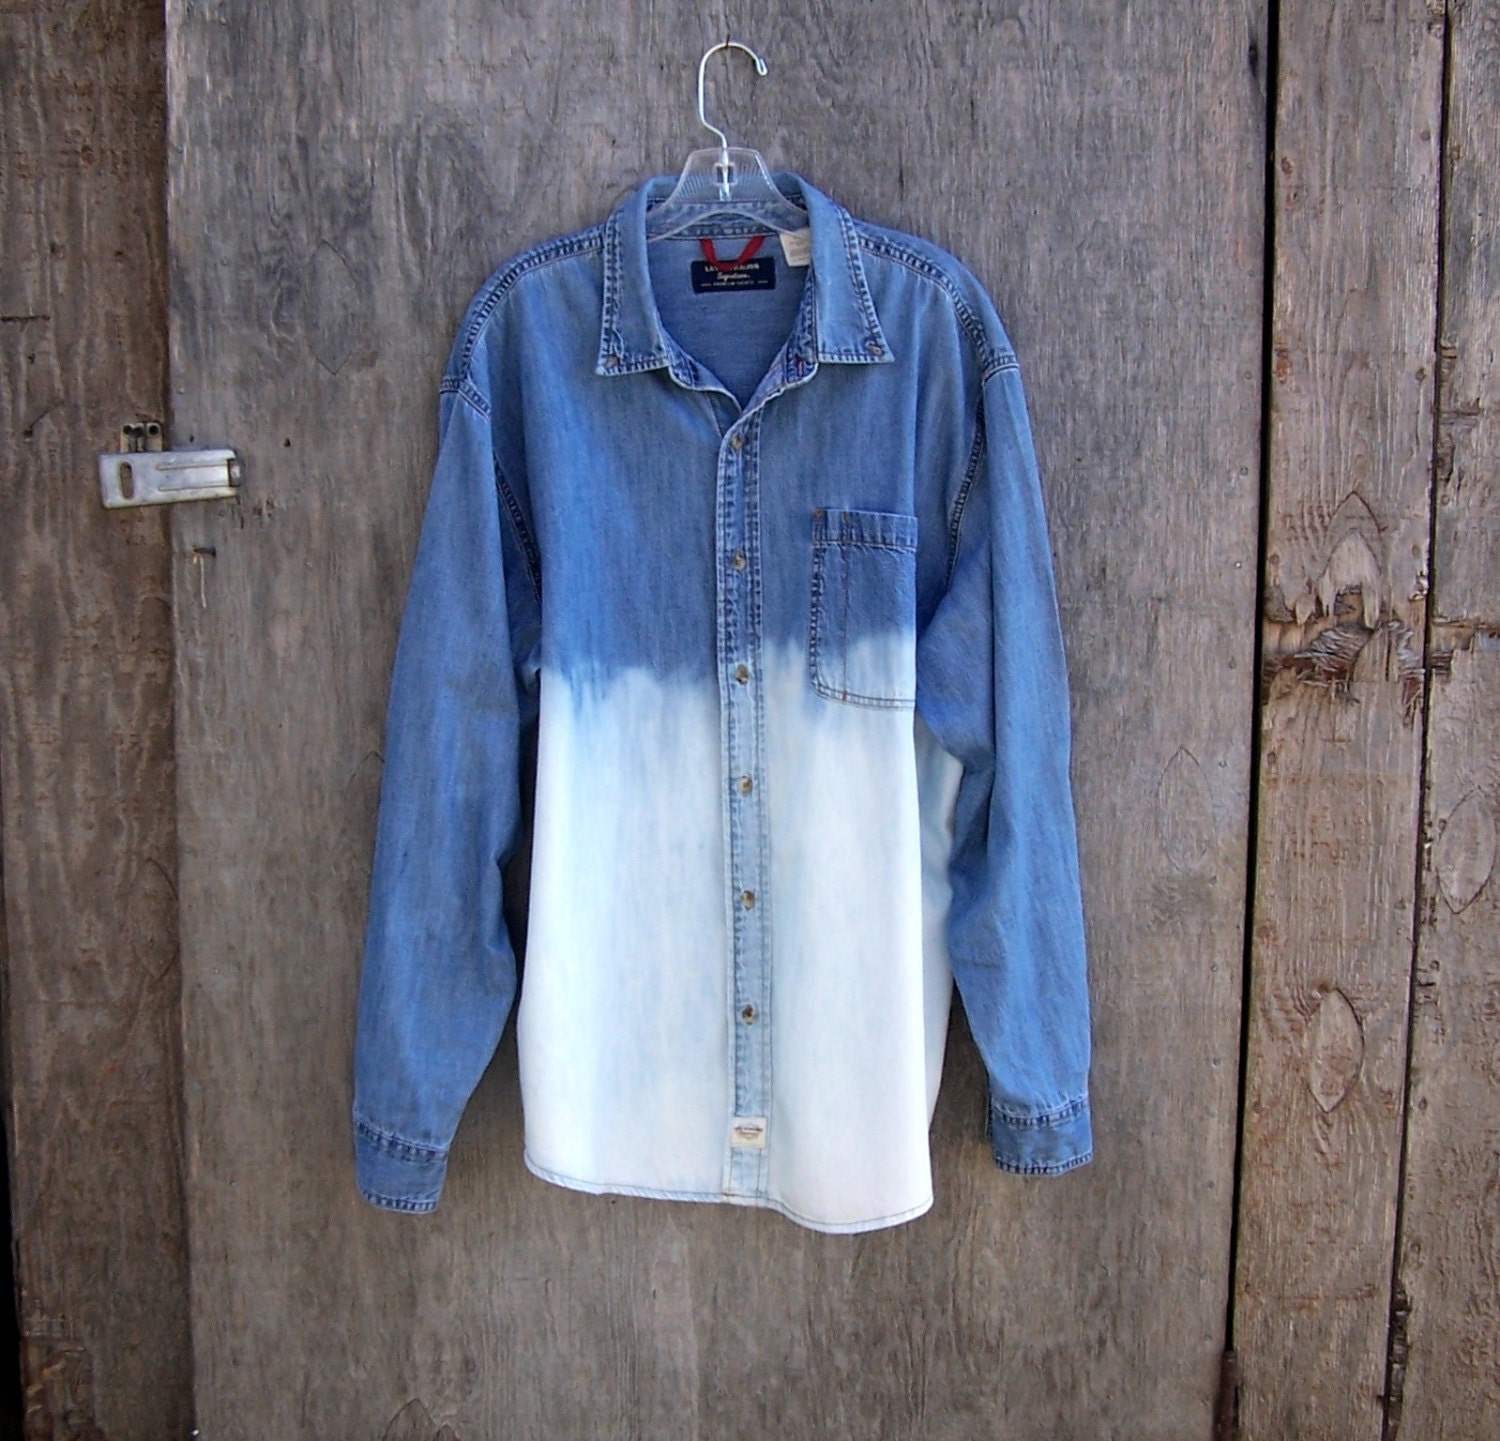 LEVIS denim shirt long sleeve ombre half bleached jean jacket